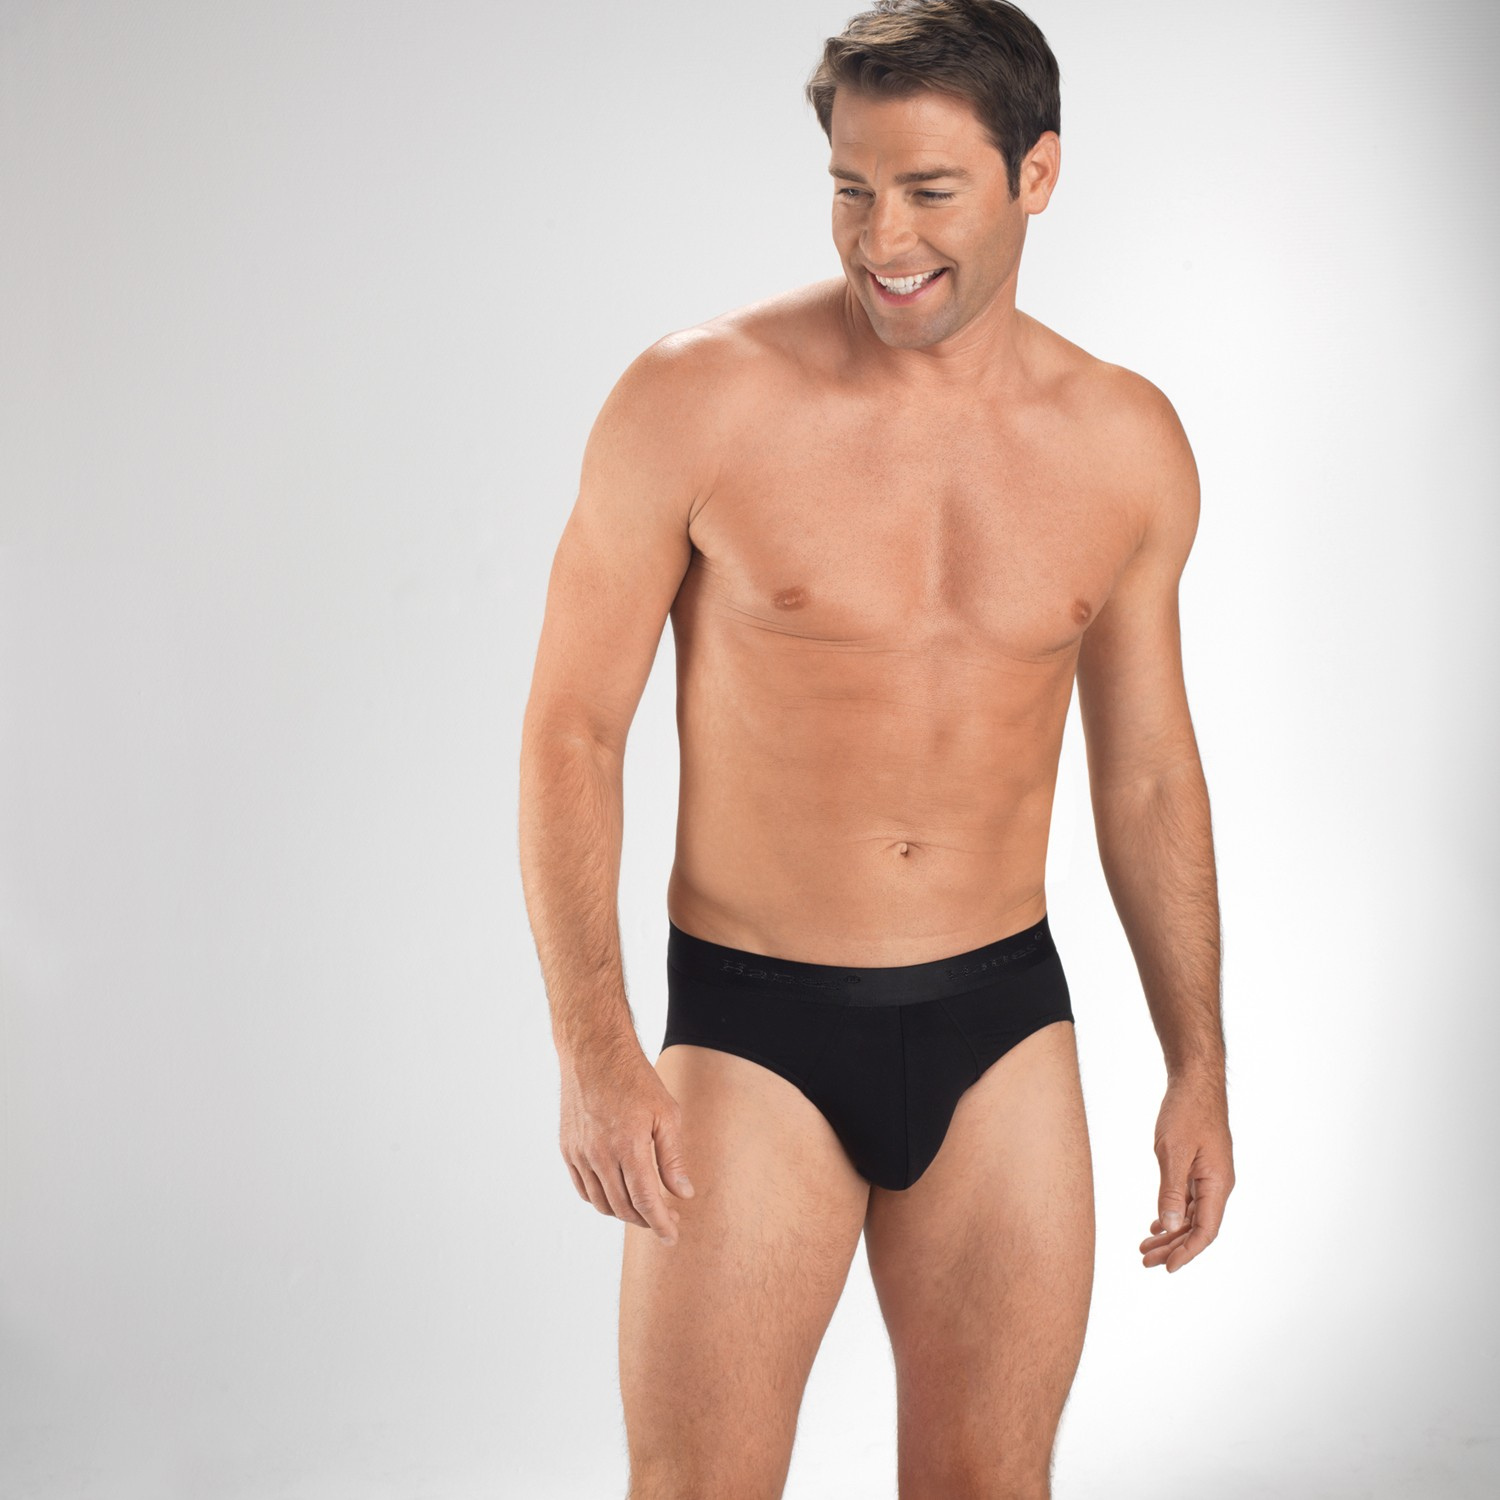 Talking about men's fashion, clothing plays an important role and when we talk about clothing, men's underwear is something that you cannot ignore. Started with the loincloth in order to provide the necessary coverage to the male anatomy, the intimate wear has come a long way since then.